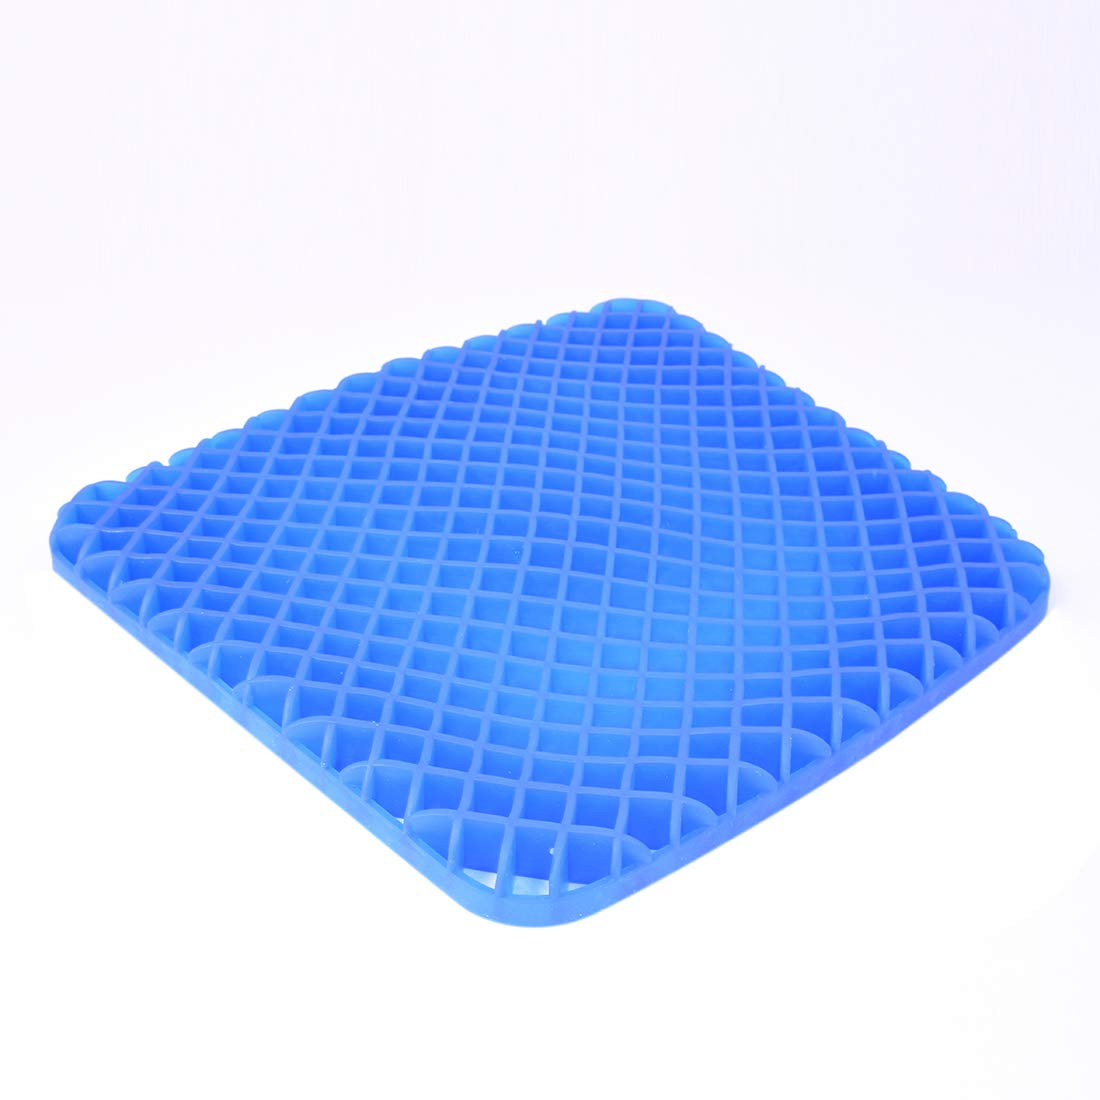 Gel Seat Cushion - Cool and Ventilated - Non-Slip , Seat Cushion - Relieves Sciatica and Coccyx Pain Housefar